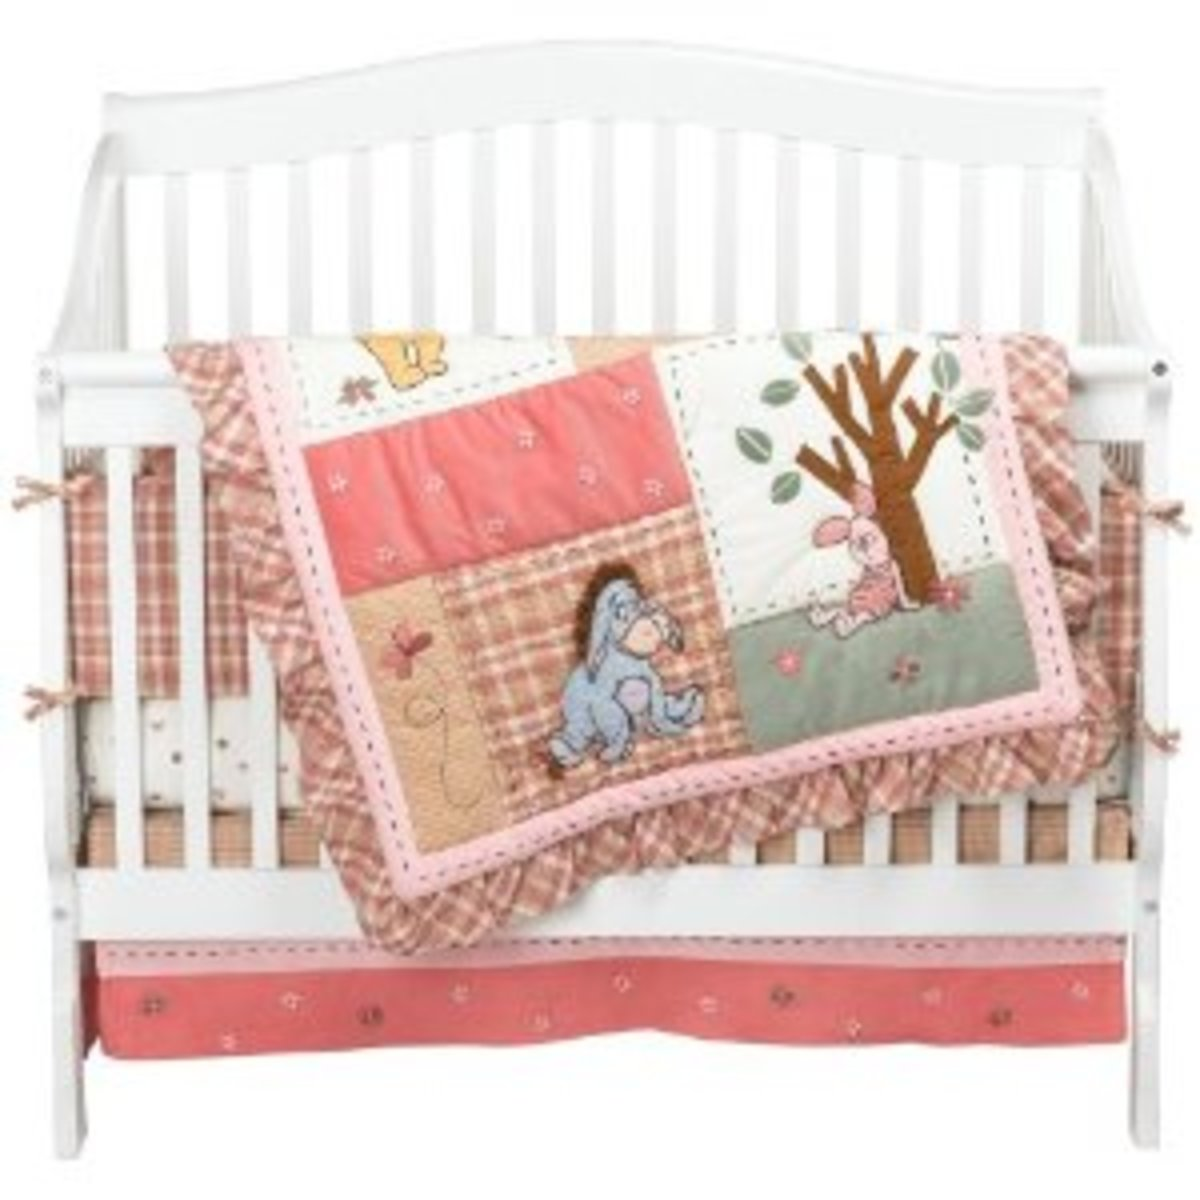 And Complement This Disney Pooh 4 Piece Crib Bedding Set Delightful Day Even Better It Is On At The Moment So A Great Time To